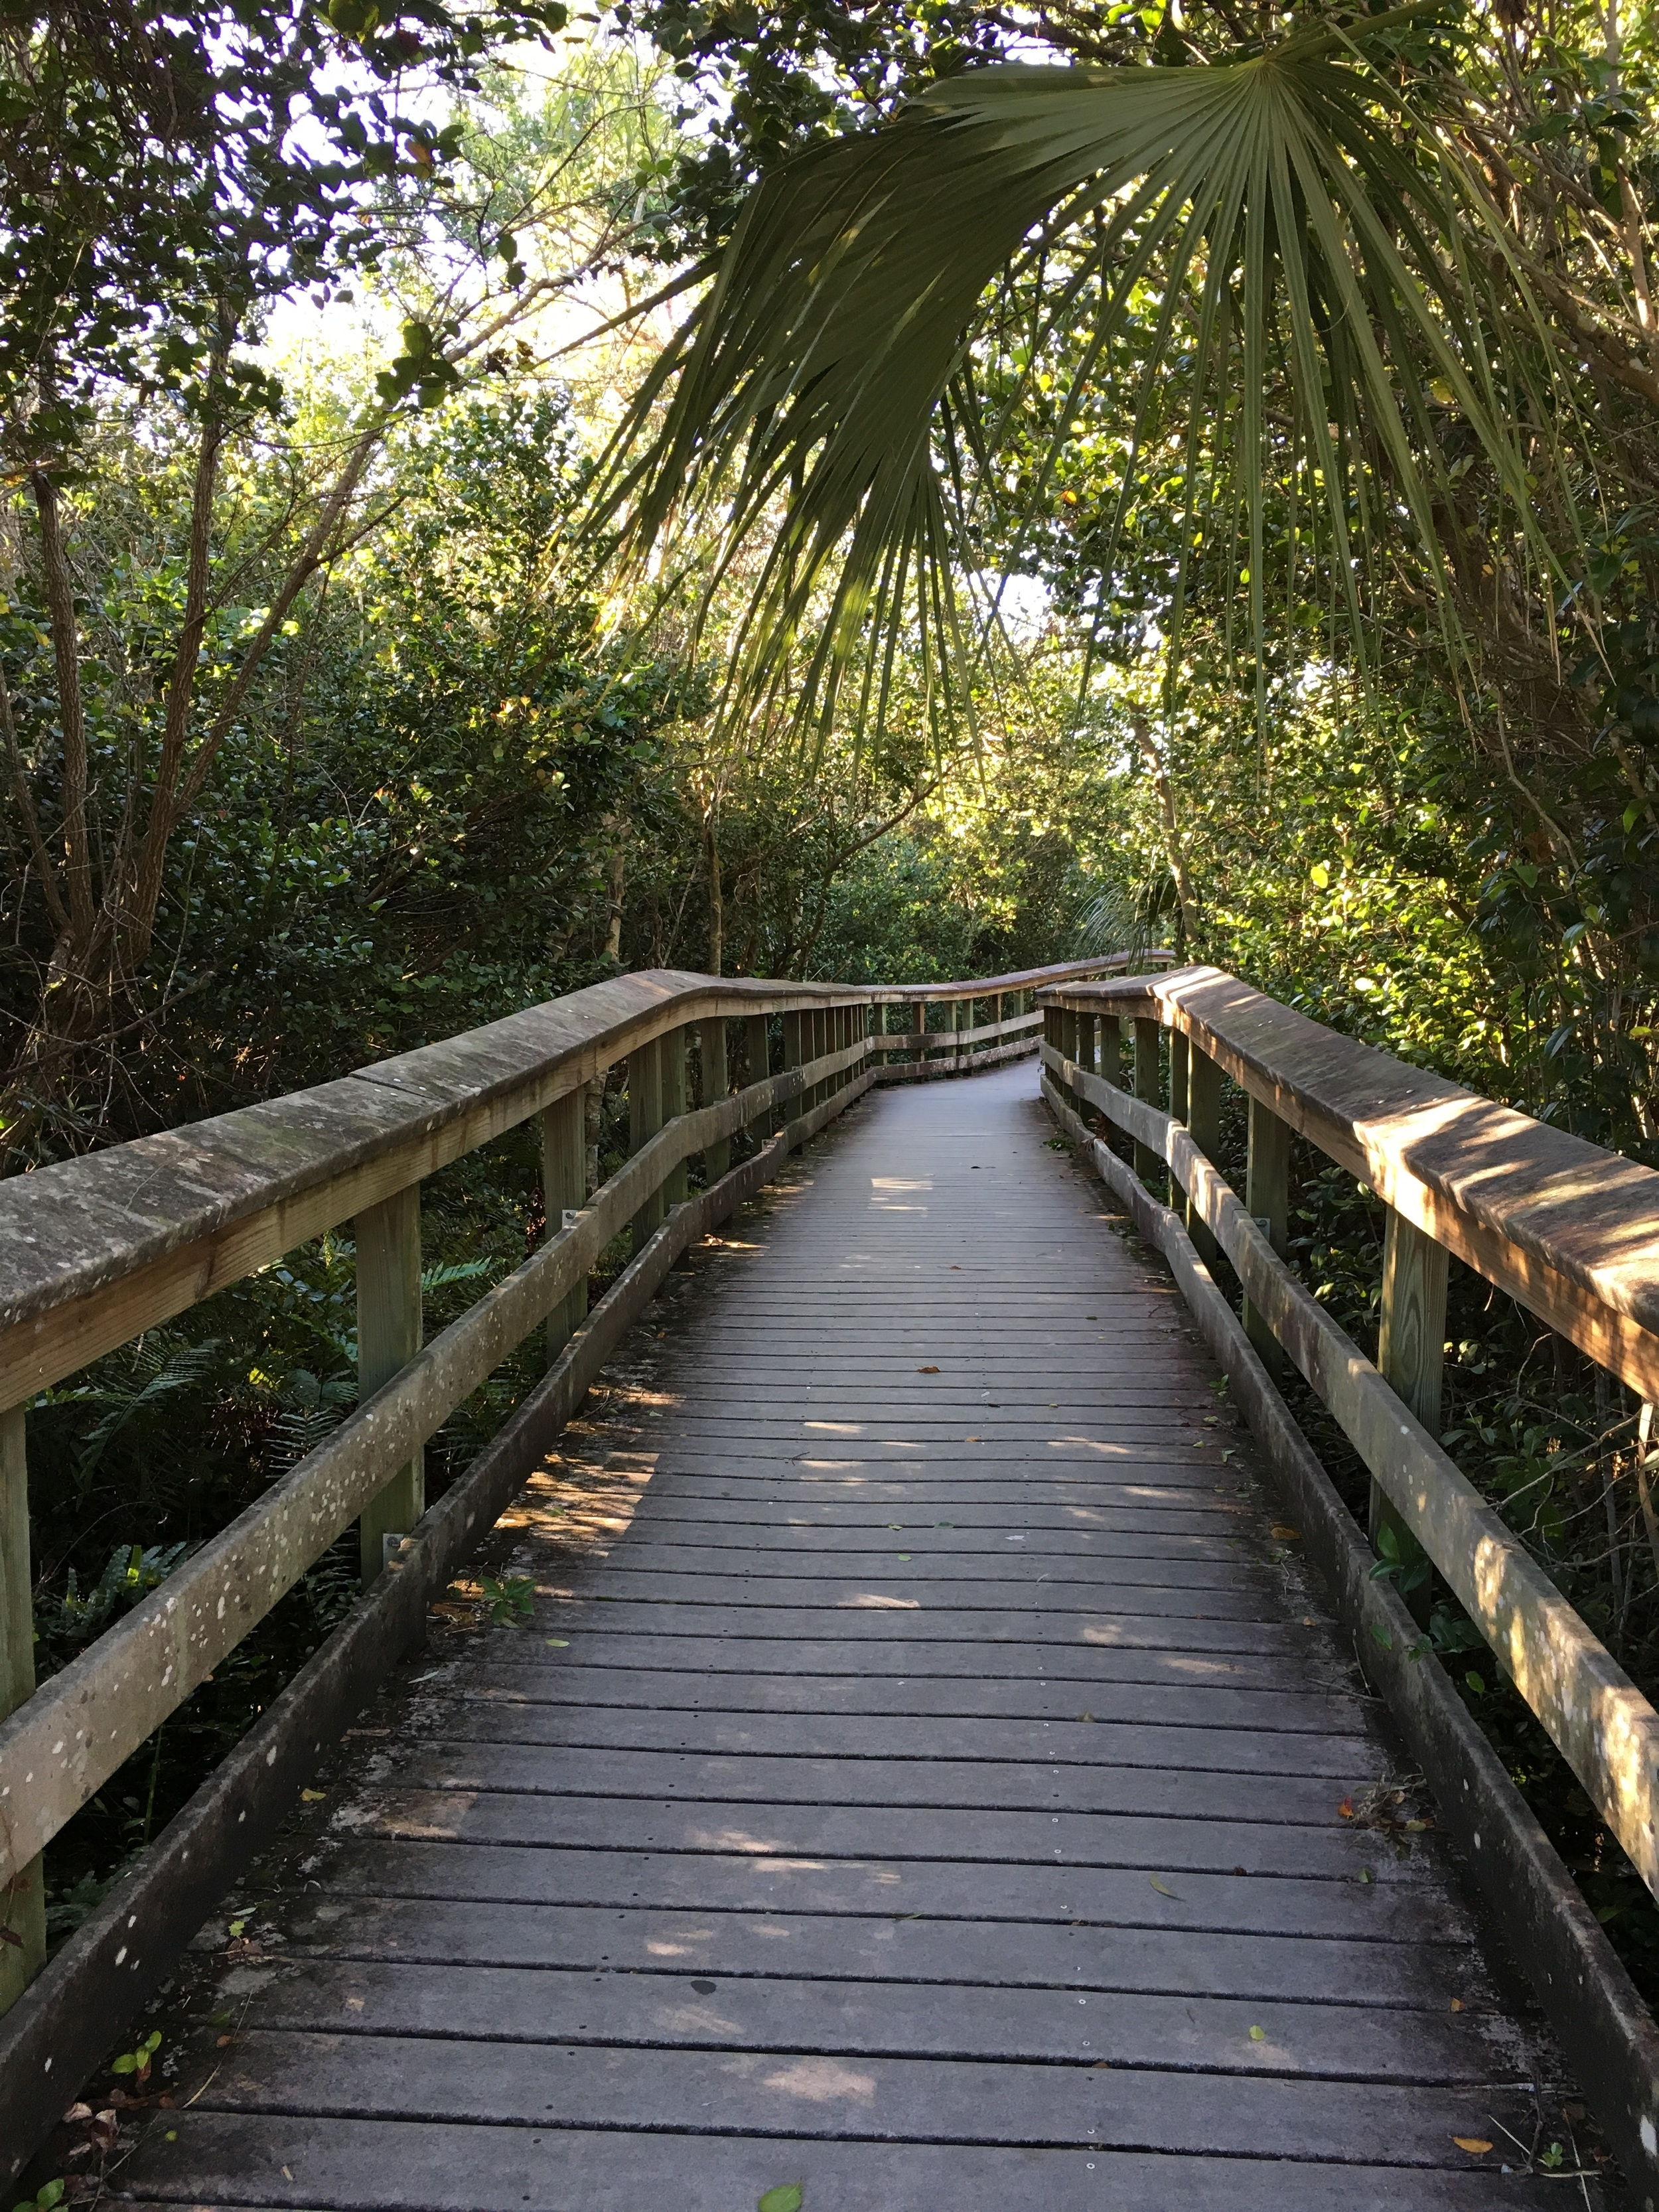 Along the trail, Everglades National Park. Photo by Derek Wright.